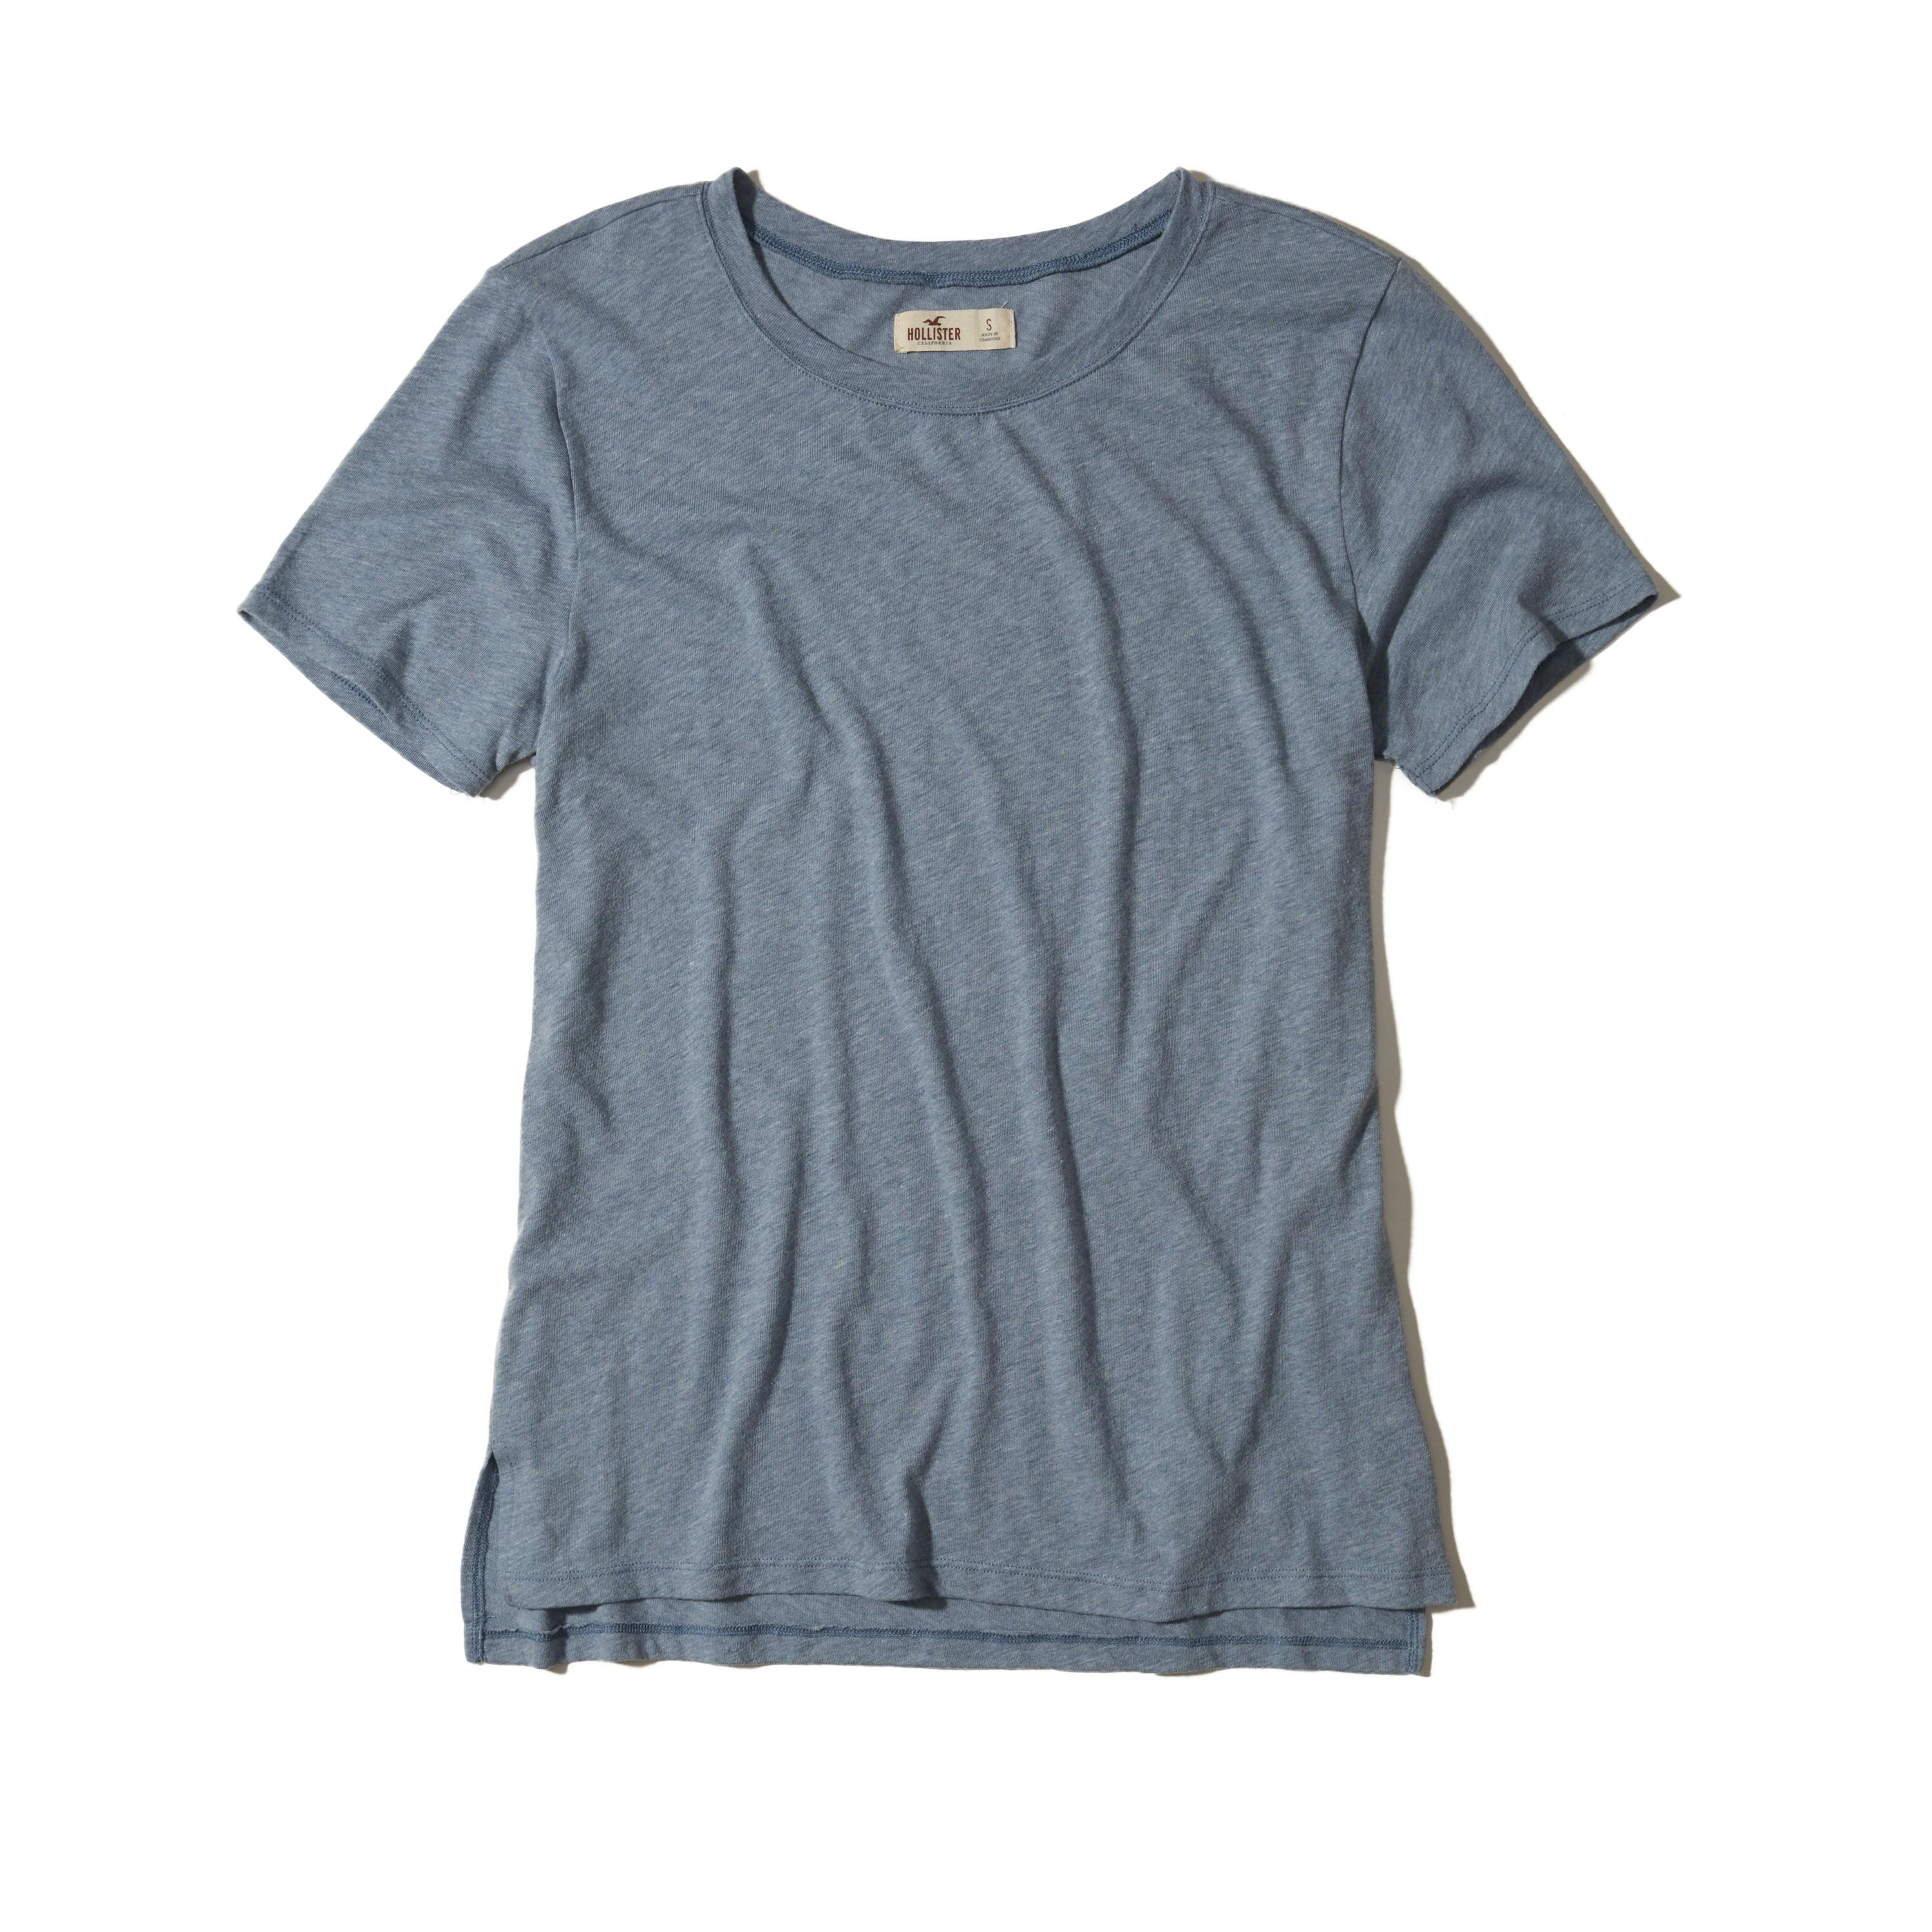 Hollister Oversized T-shirt In Blue